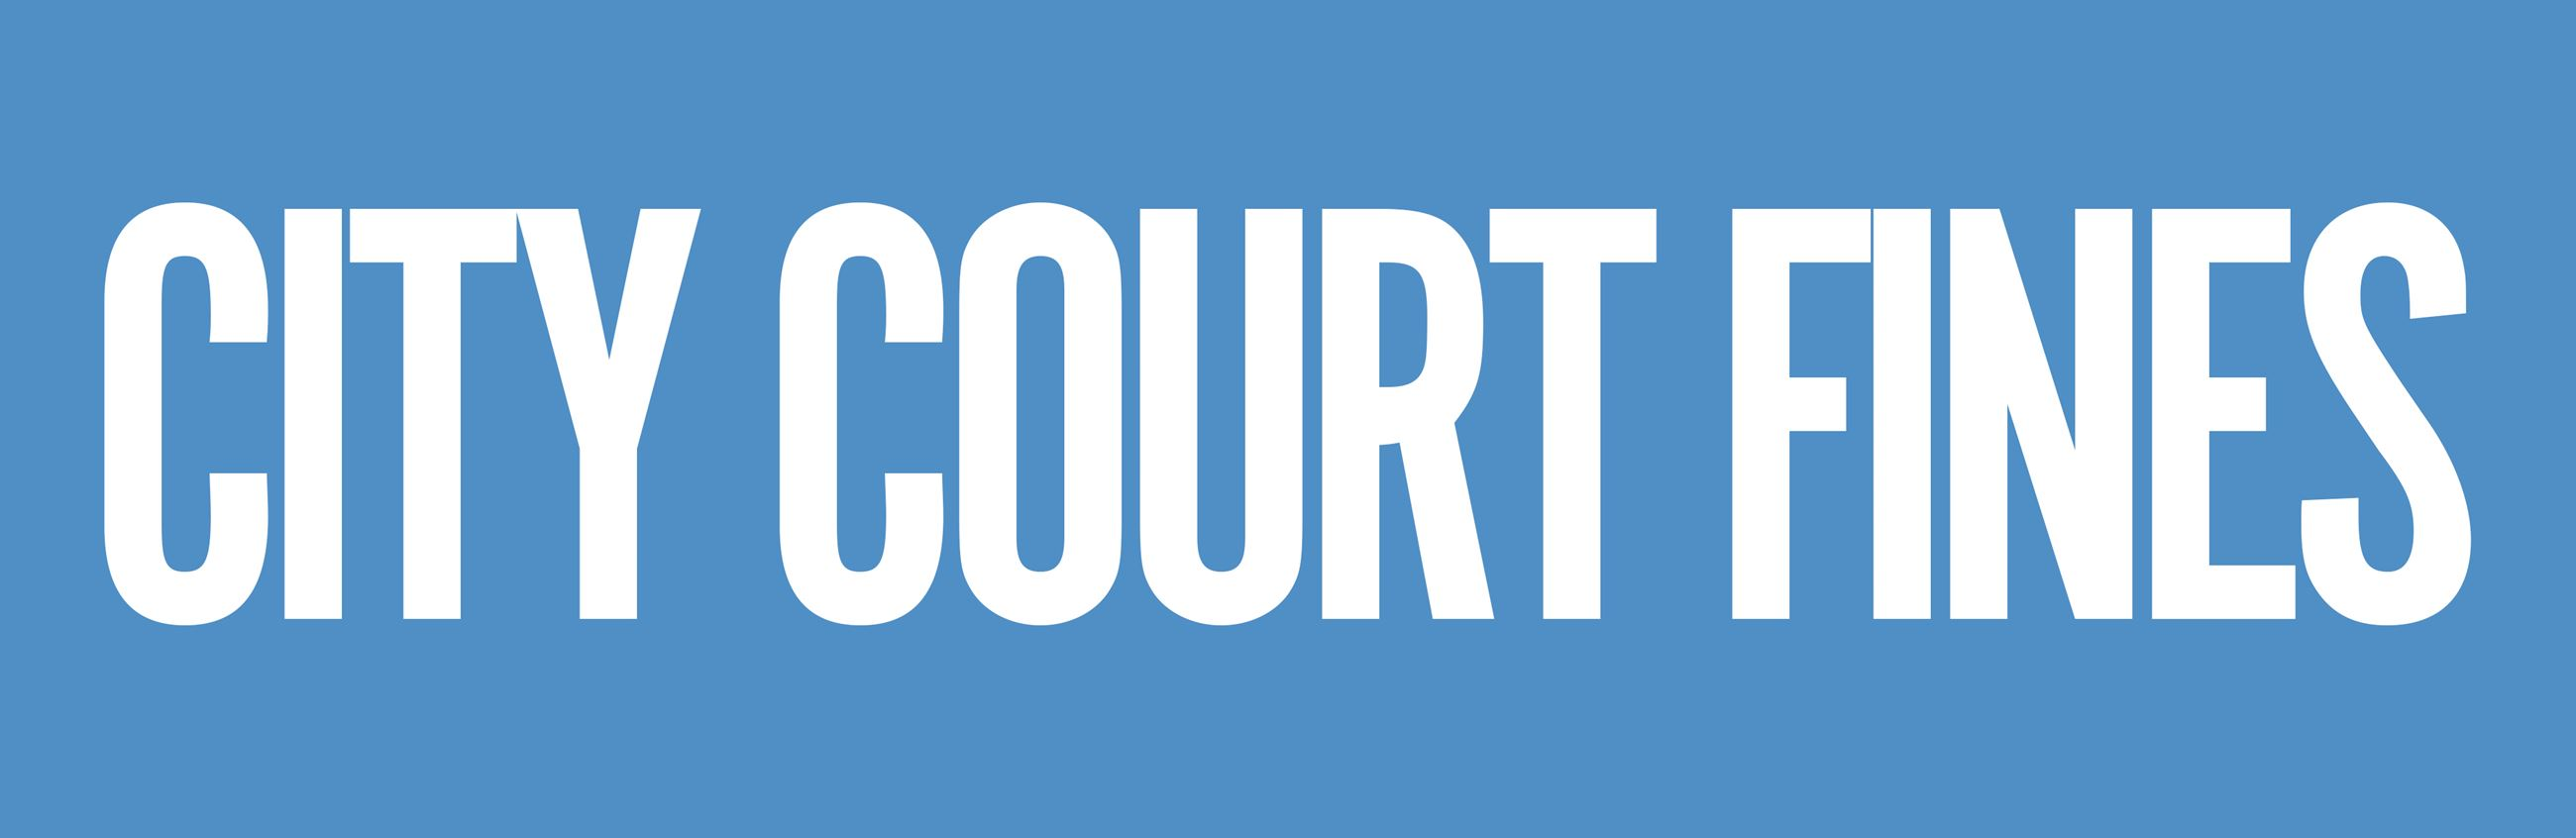 Pay City Court Fines